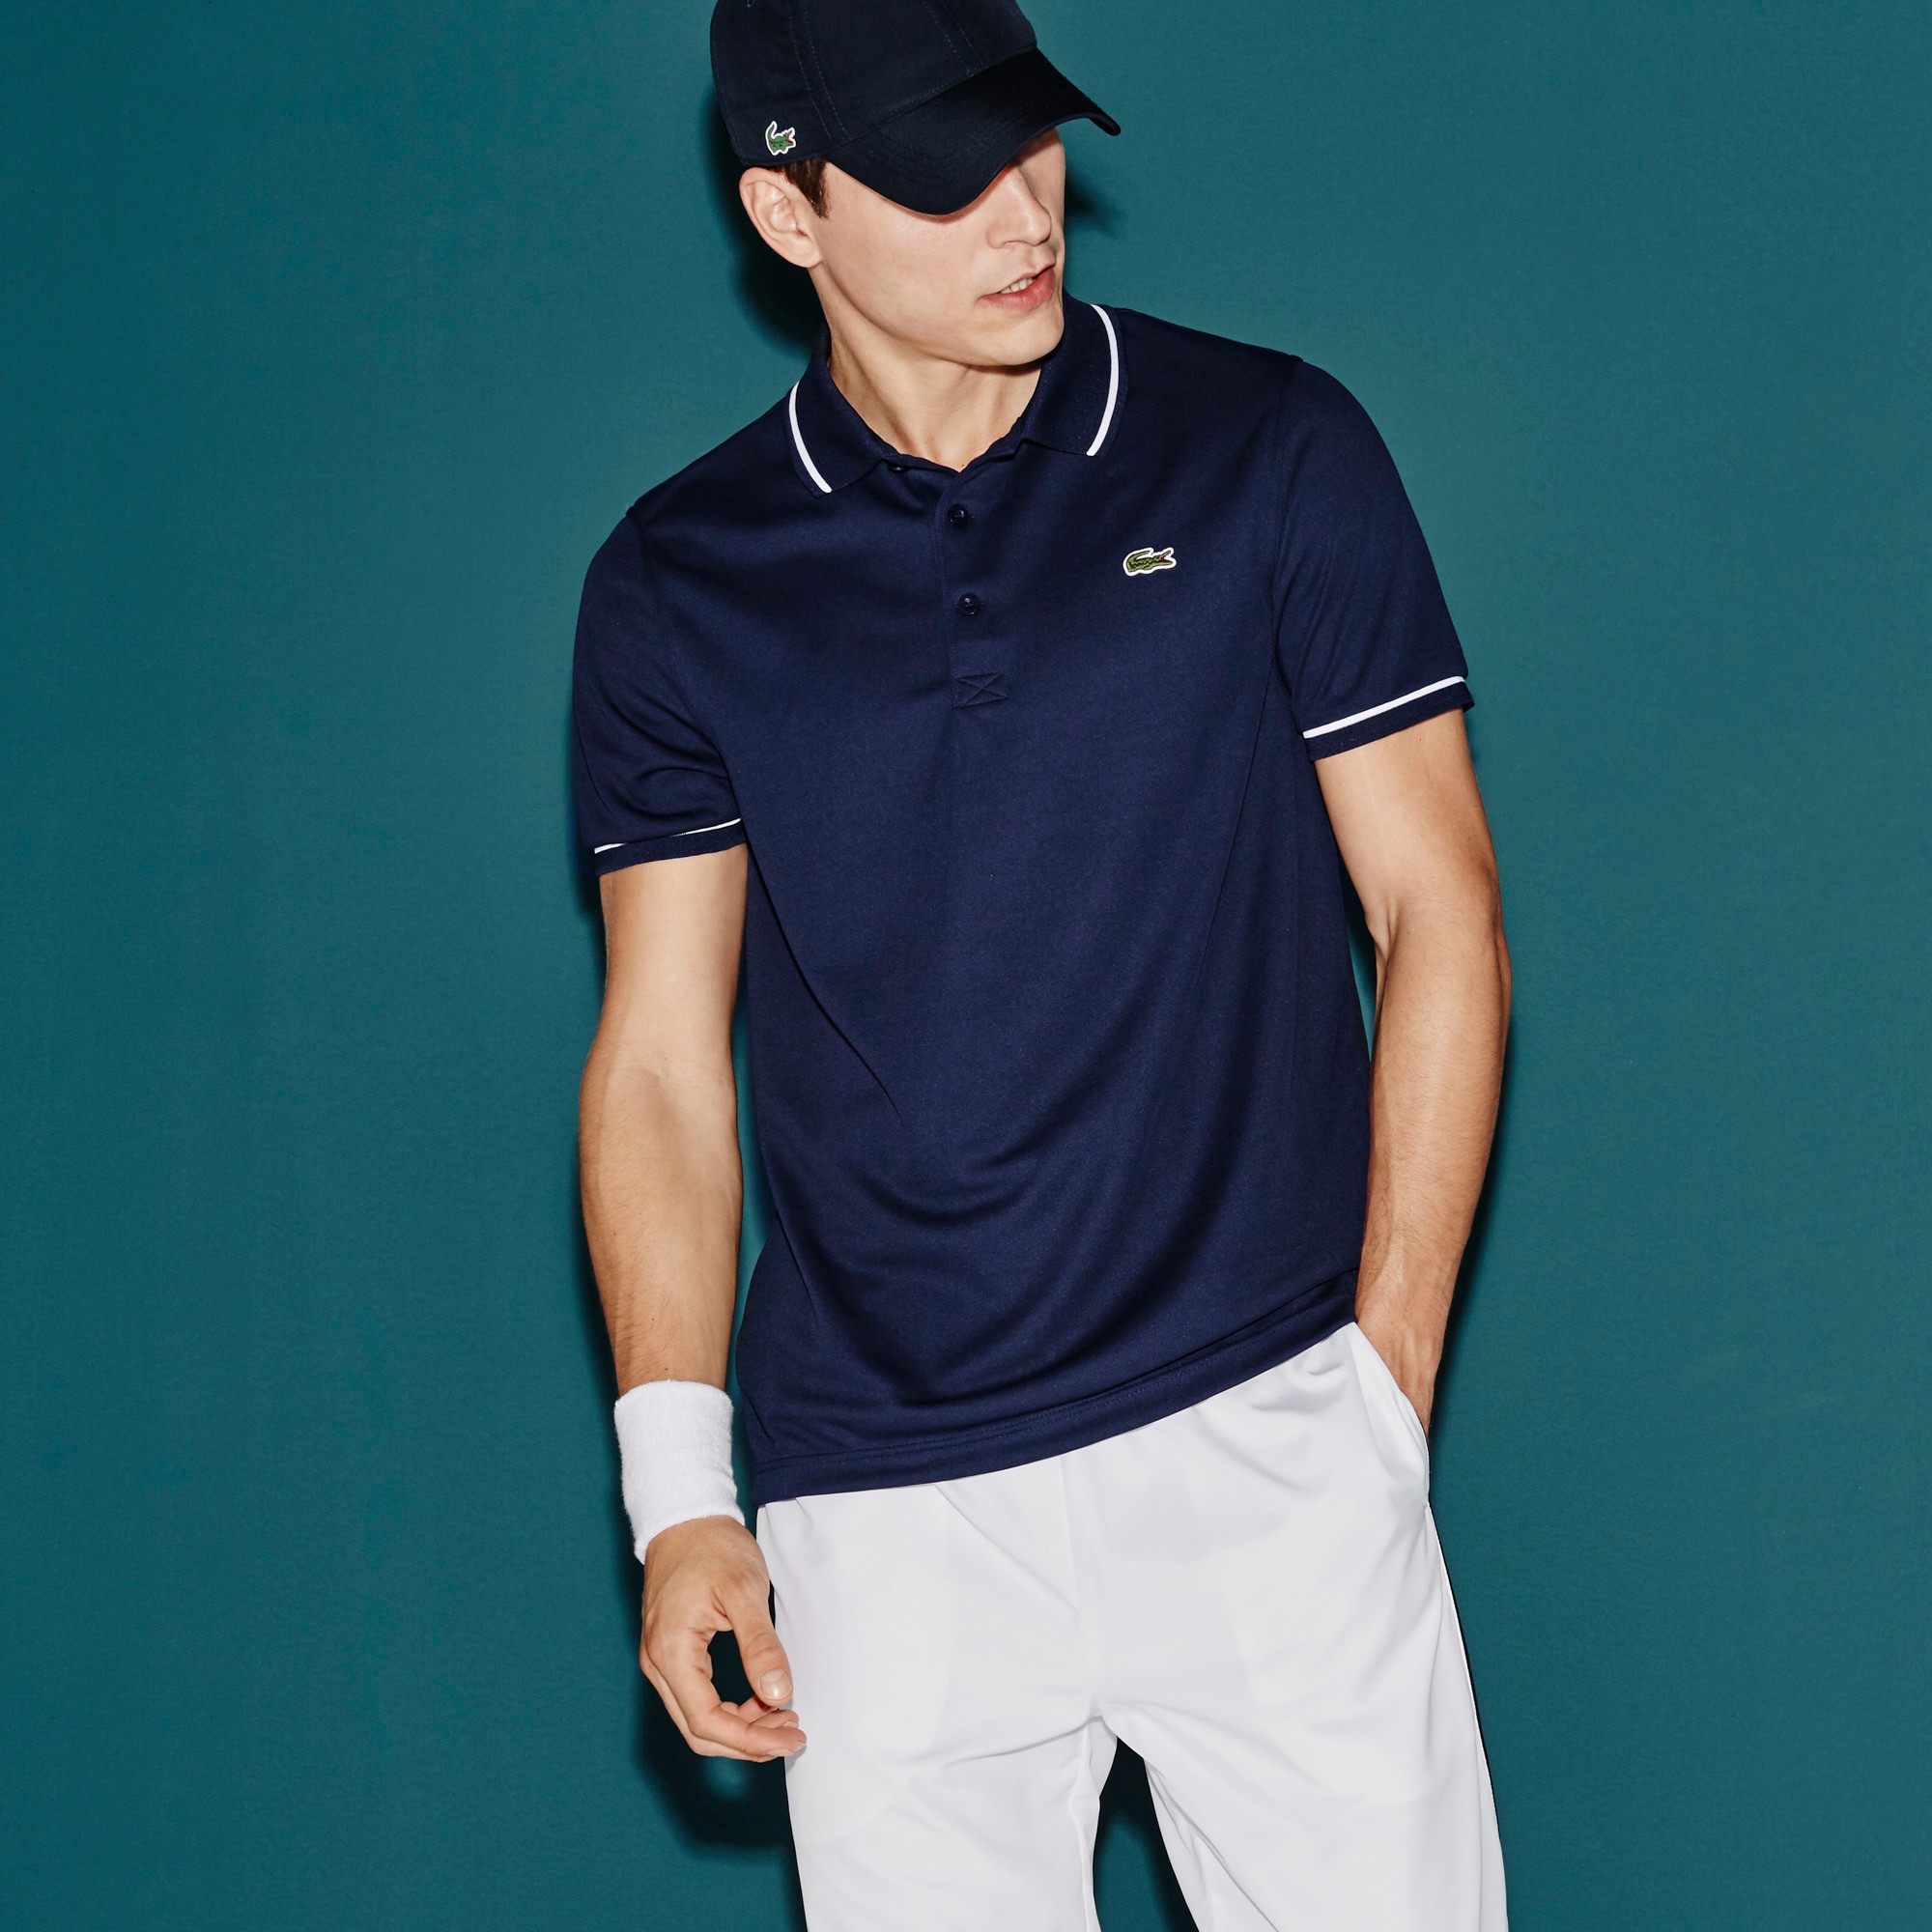 1df0801bd Lacoste Men's Sport Ultra-Dry Piping Tennis Polo Shirt - Navy Blue/White